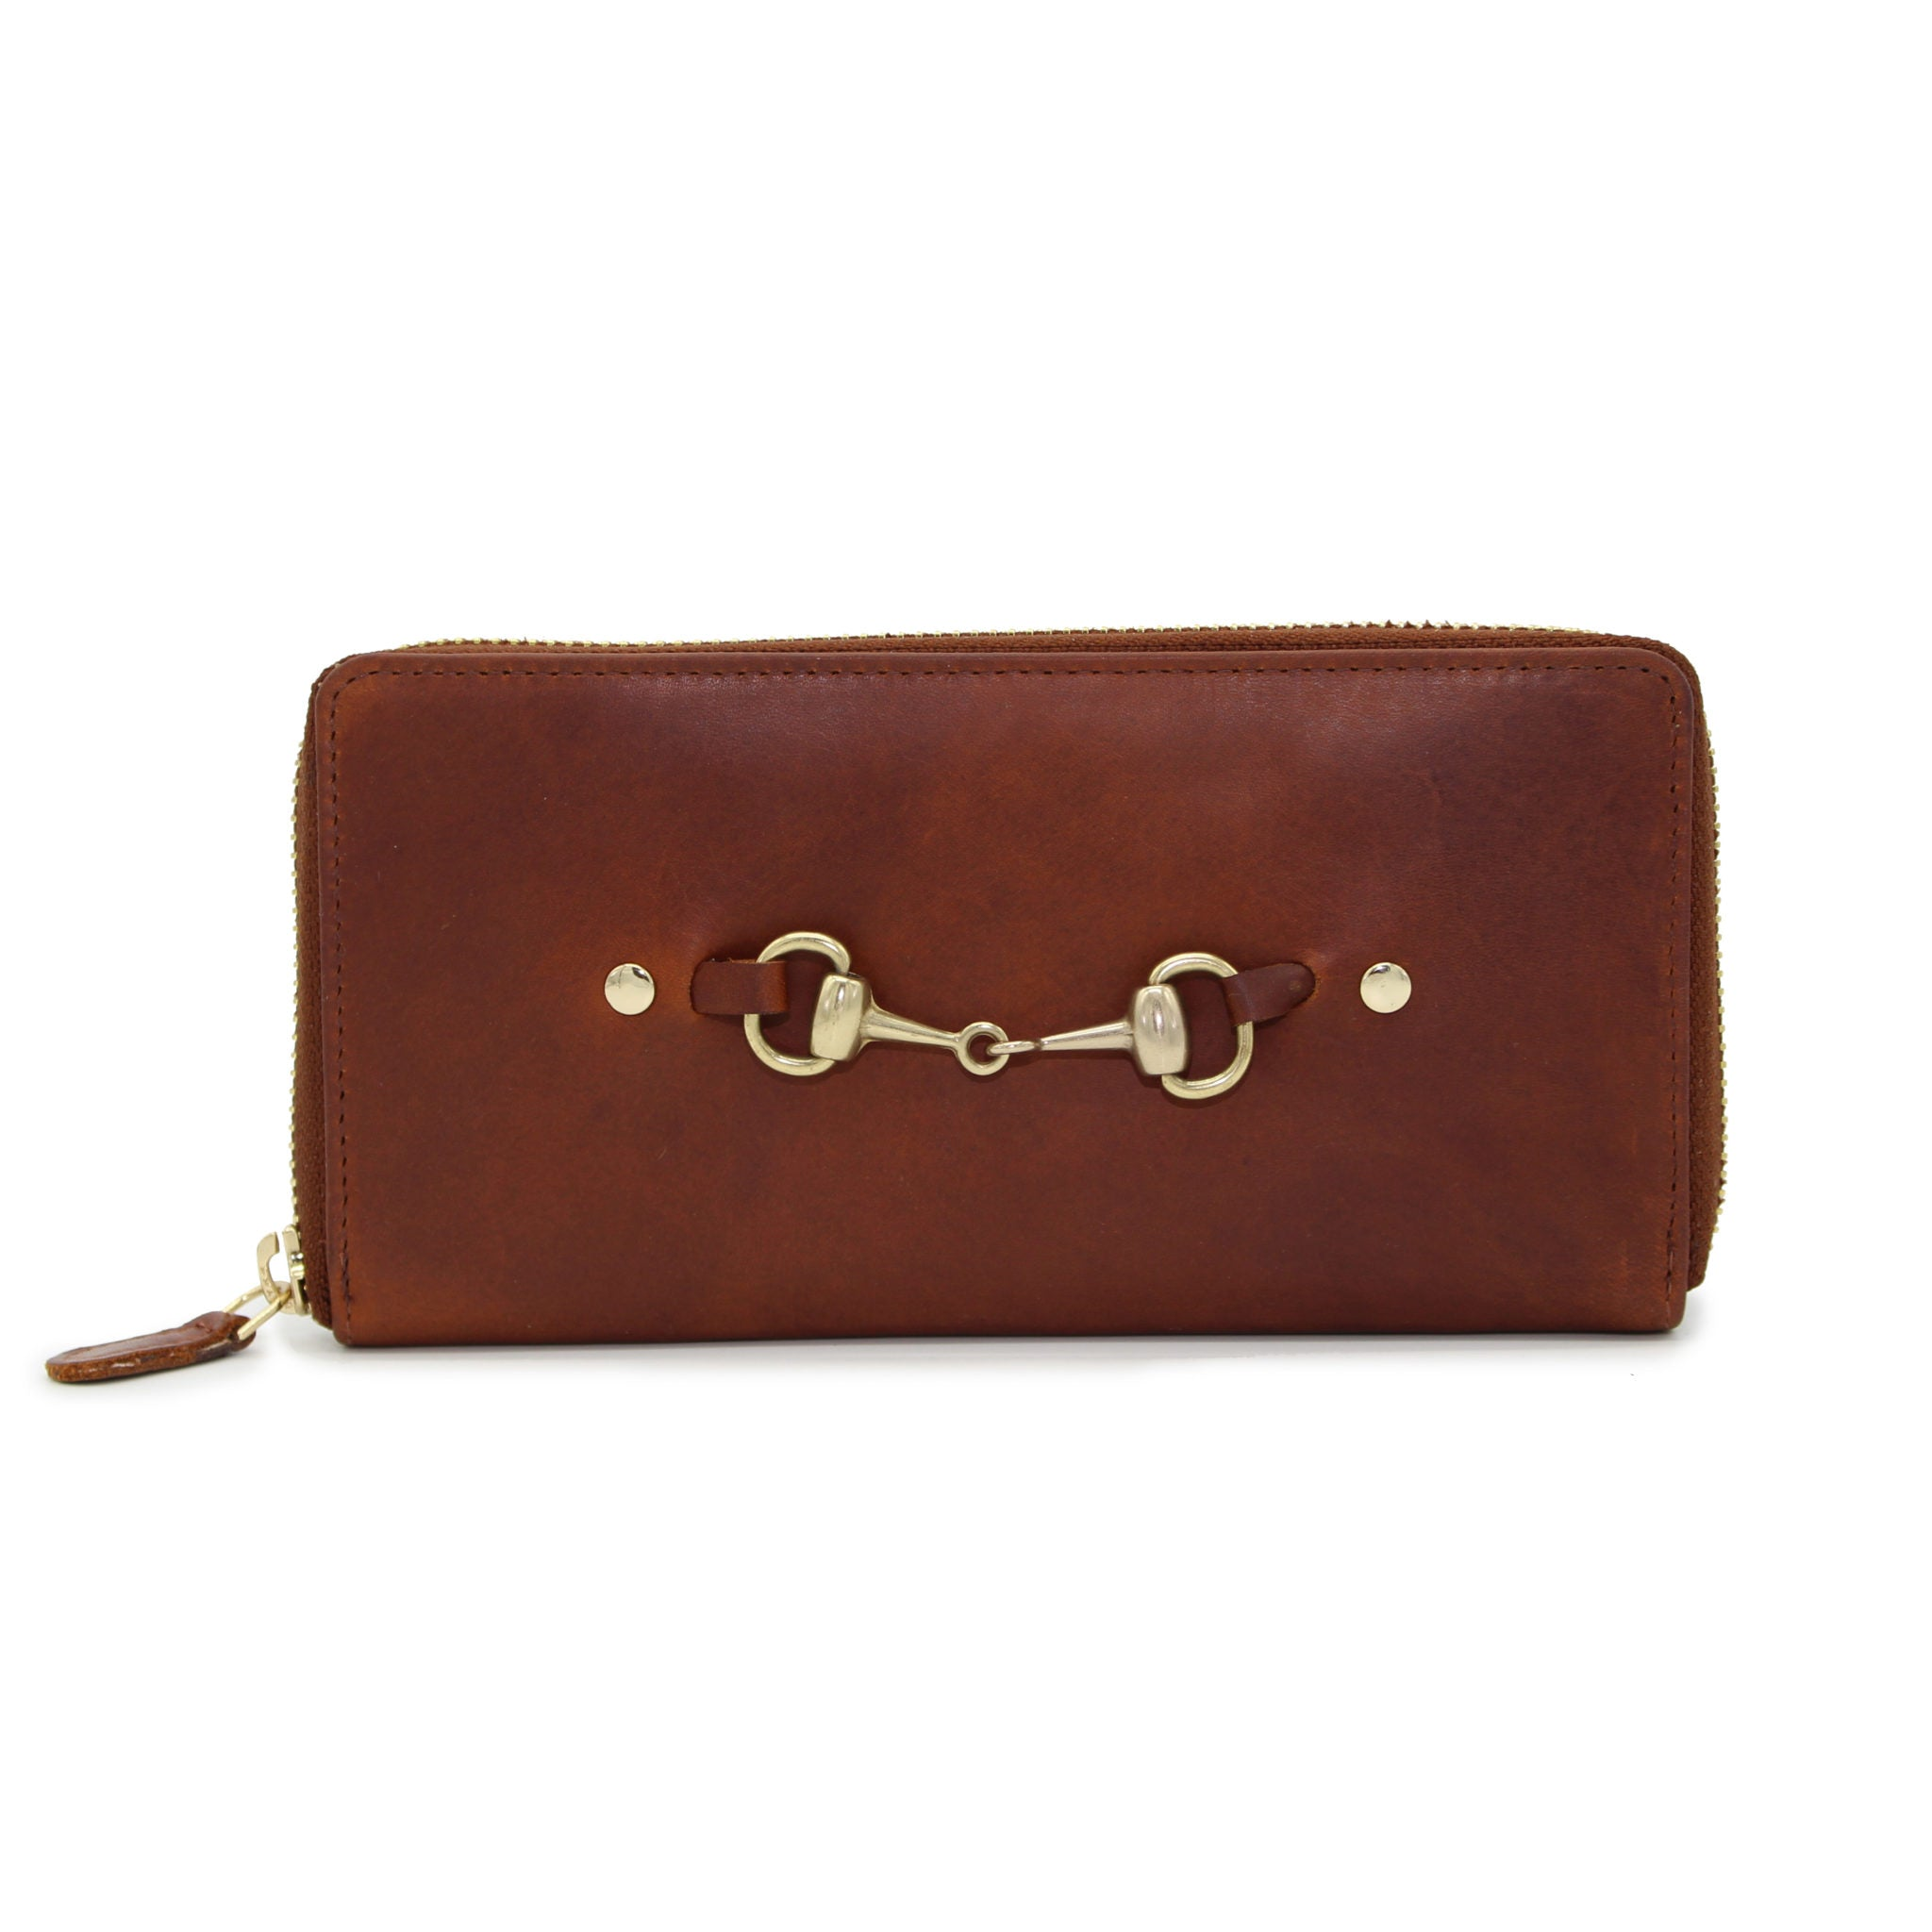 Chedworth Zip Around Bit Purse Cognac - Hicks & Hides